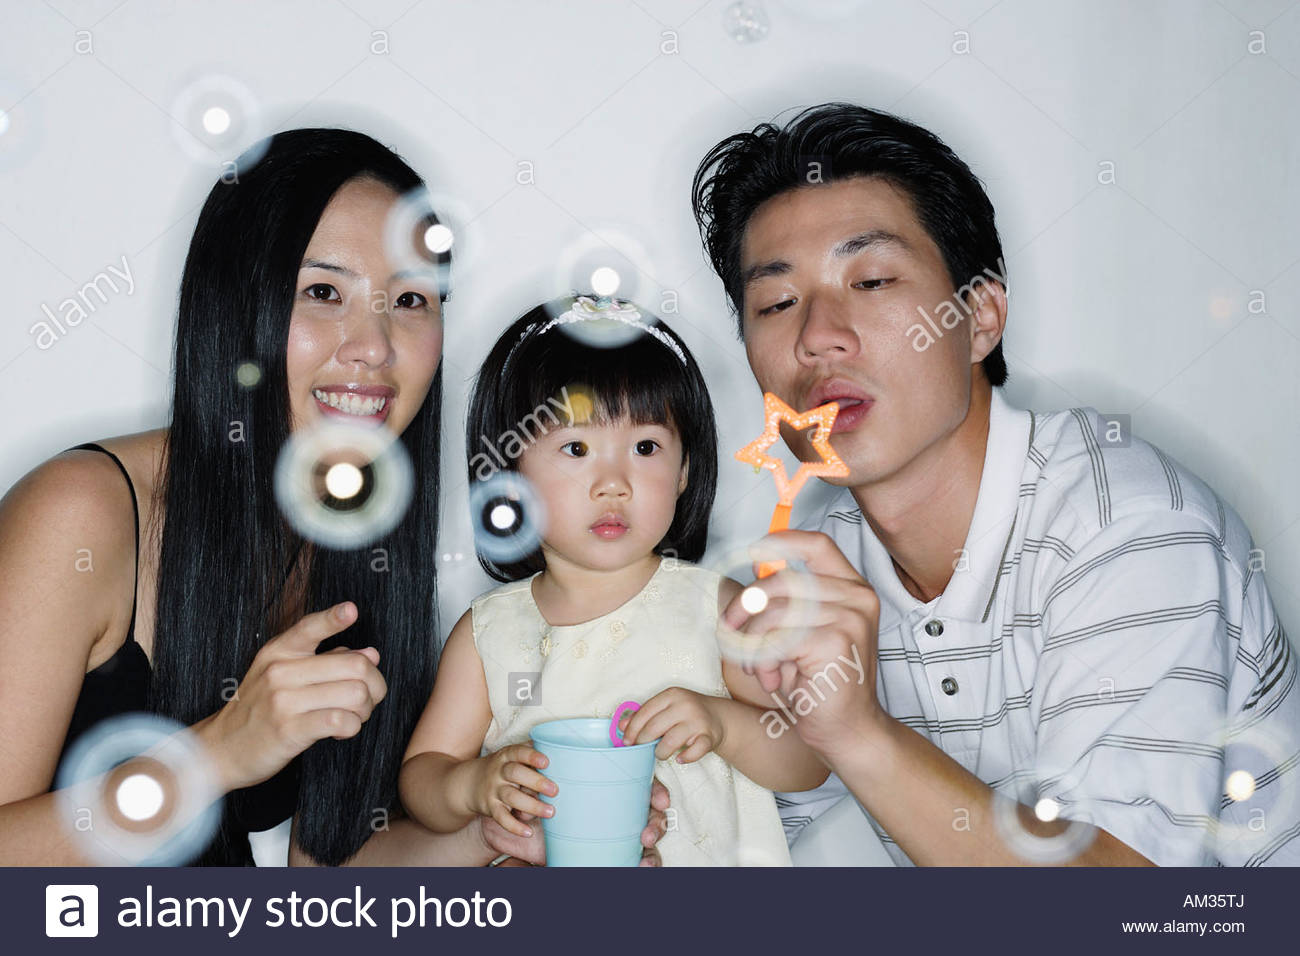 Couple with young girl blowing bubbles Stock Photo